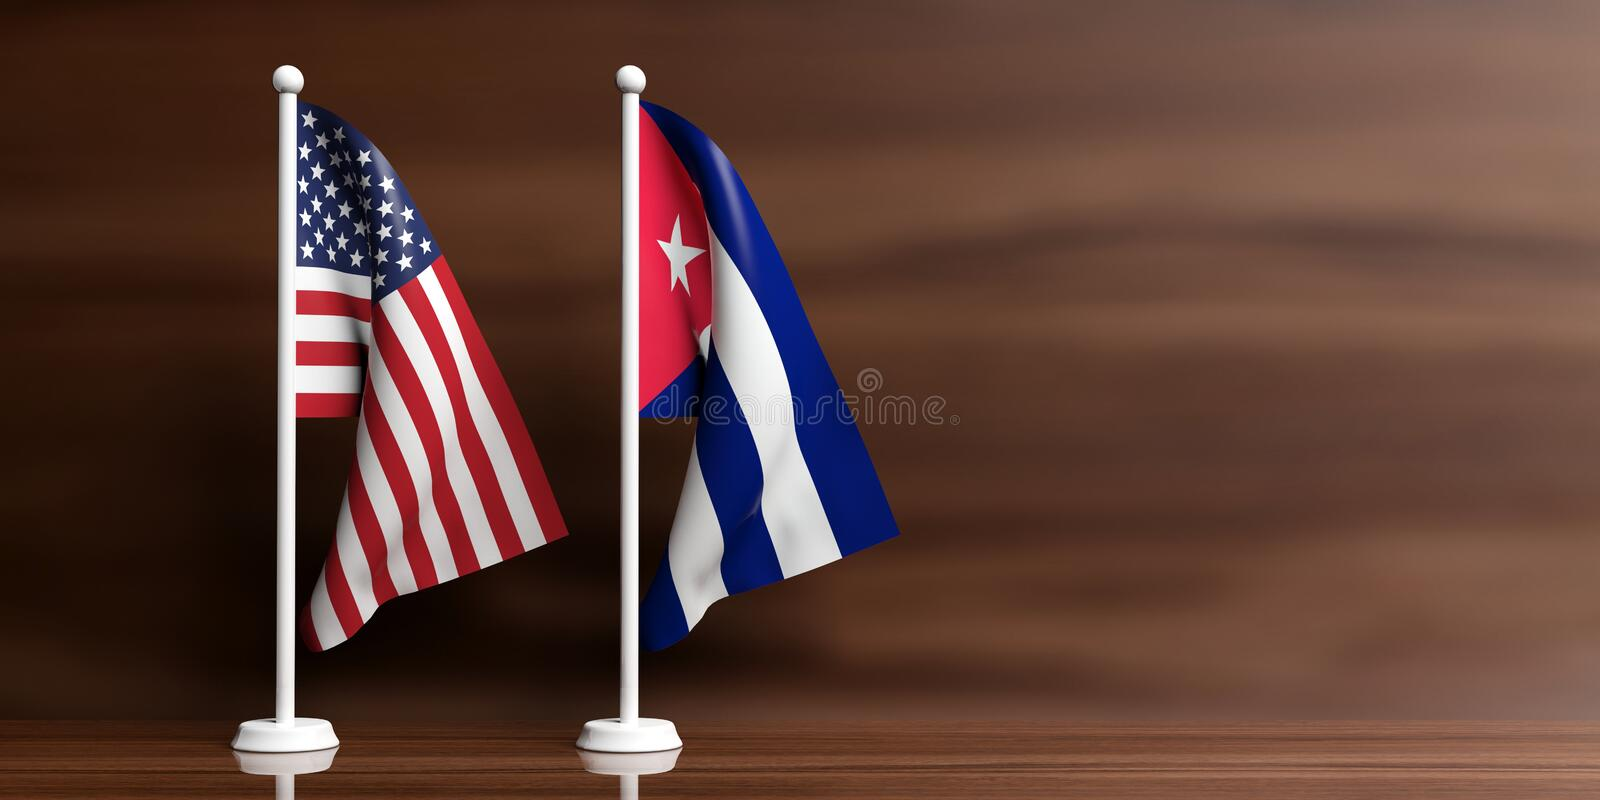 Cuba and USA flags on wooden background. 3d illustration. Cuba and USA miniature flags on wooden background. 3d illustration vector illustration